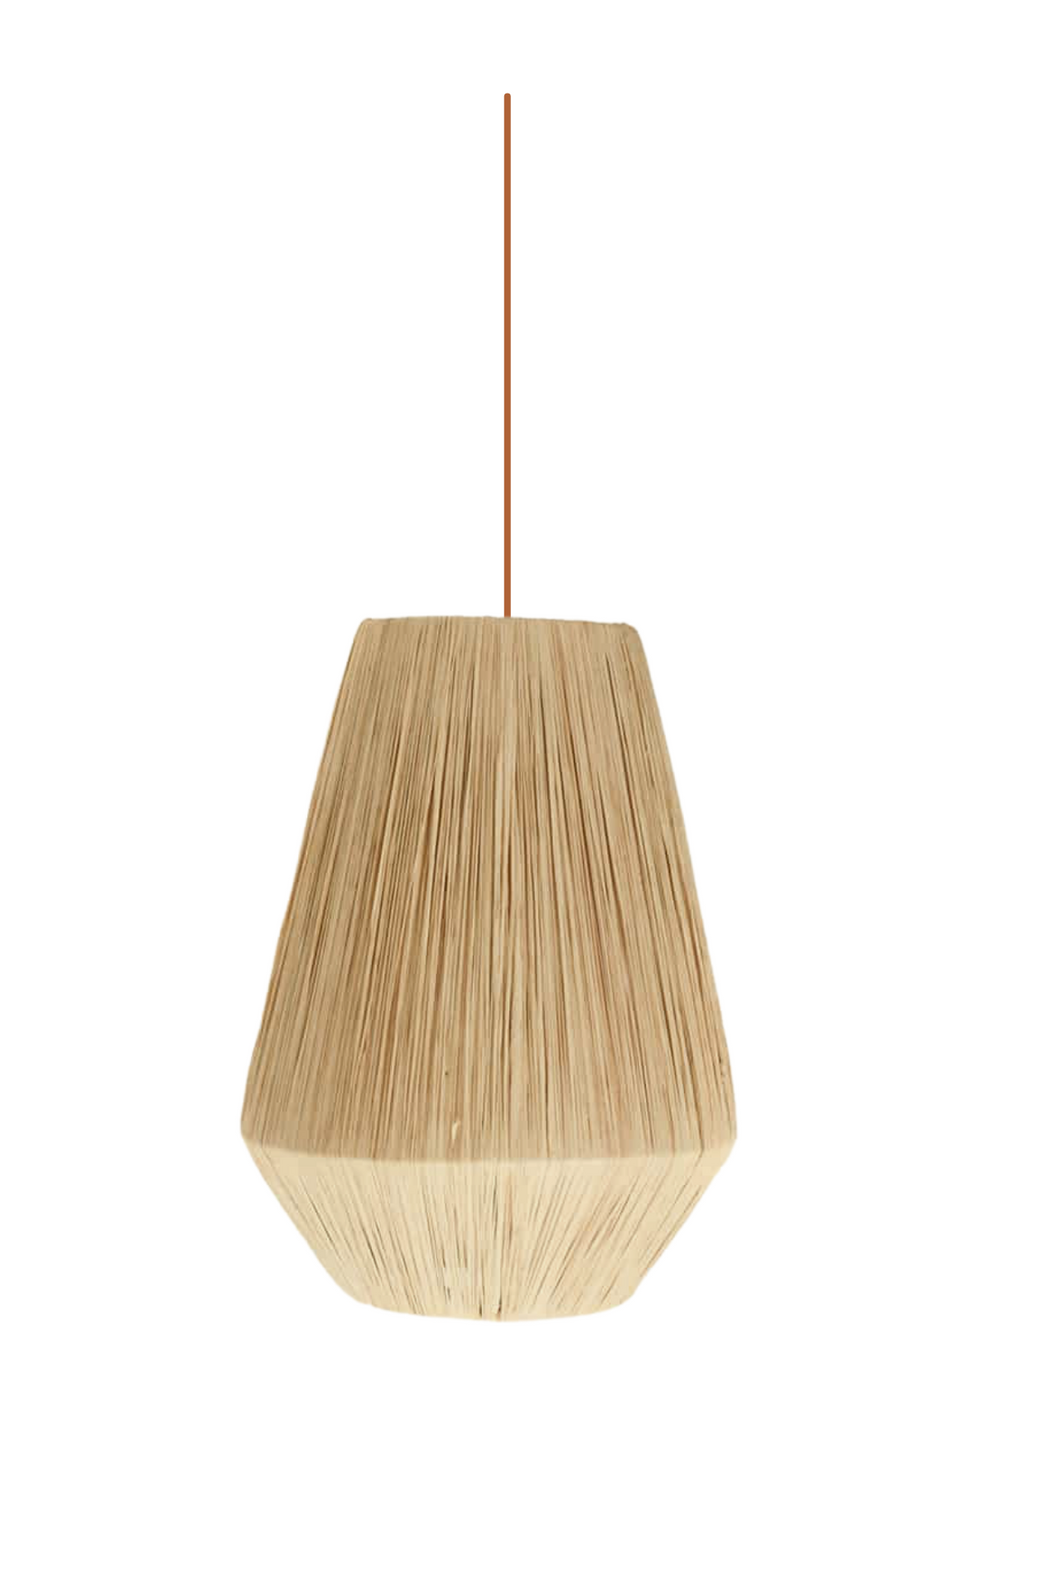 'Riad' Raffia Light Pendant 2